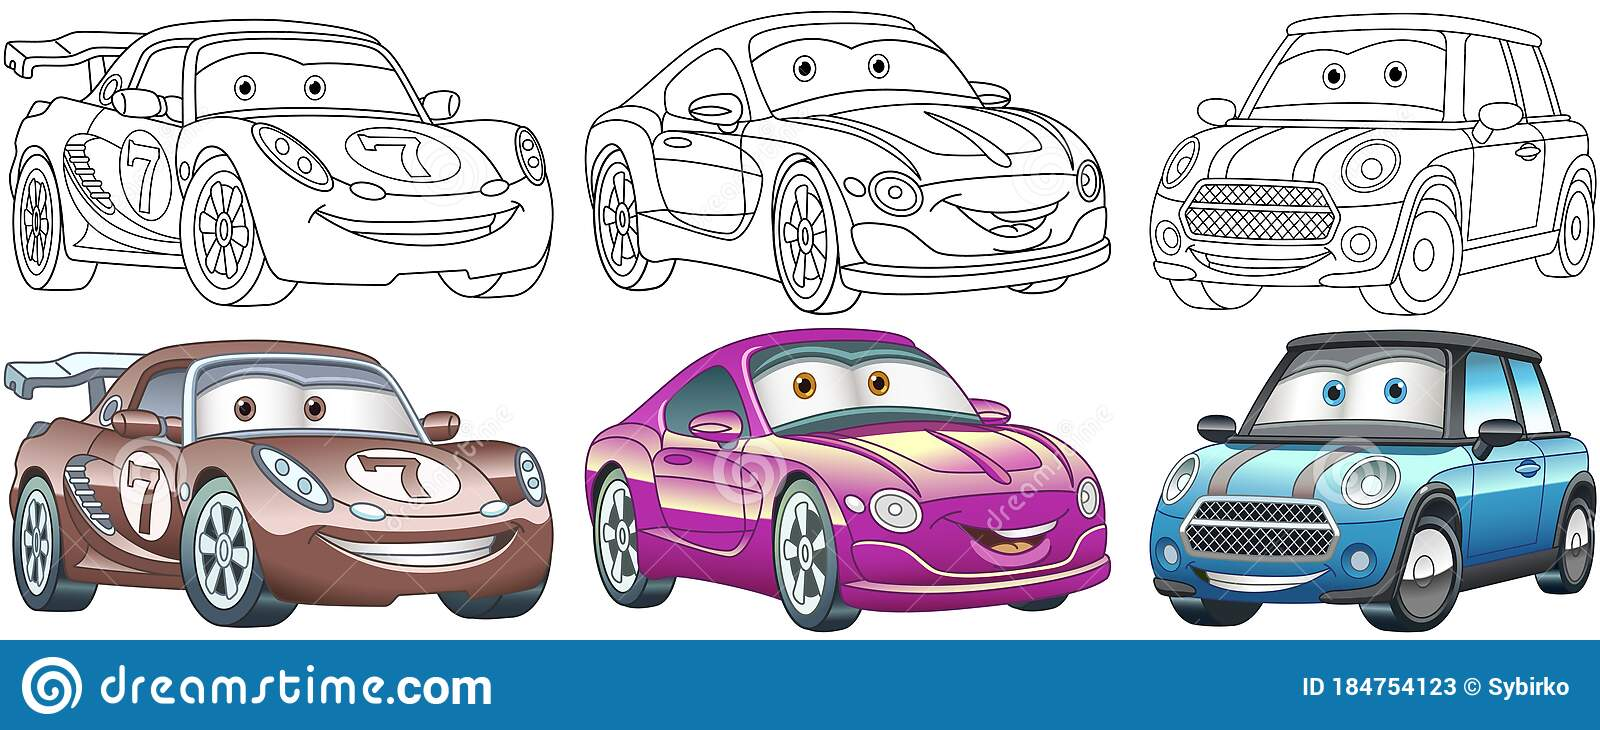 Cartoon Cars Coloring Pages Set Stock Vector Illustration Of Caricature Modern 184754123